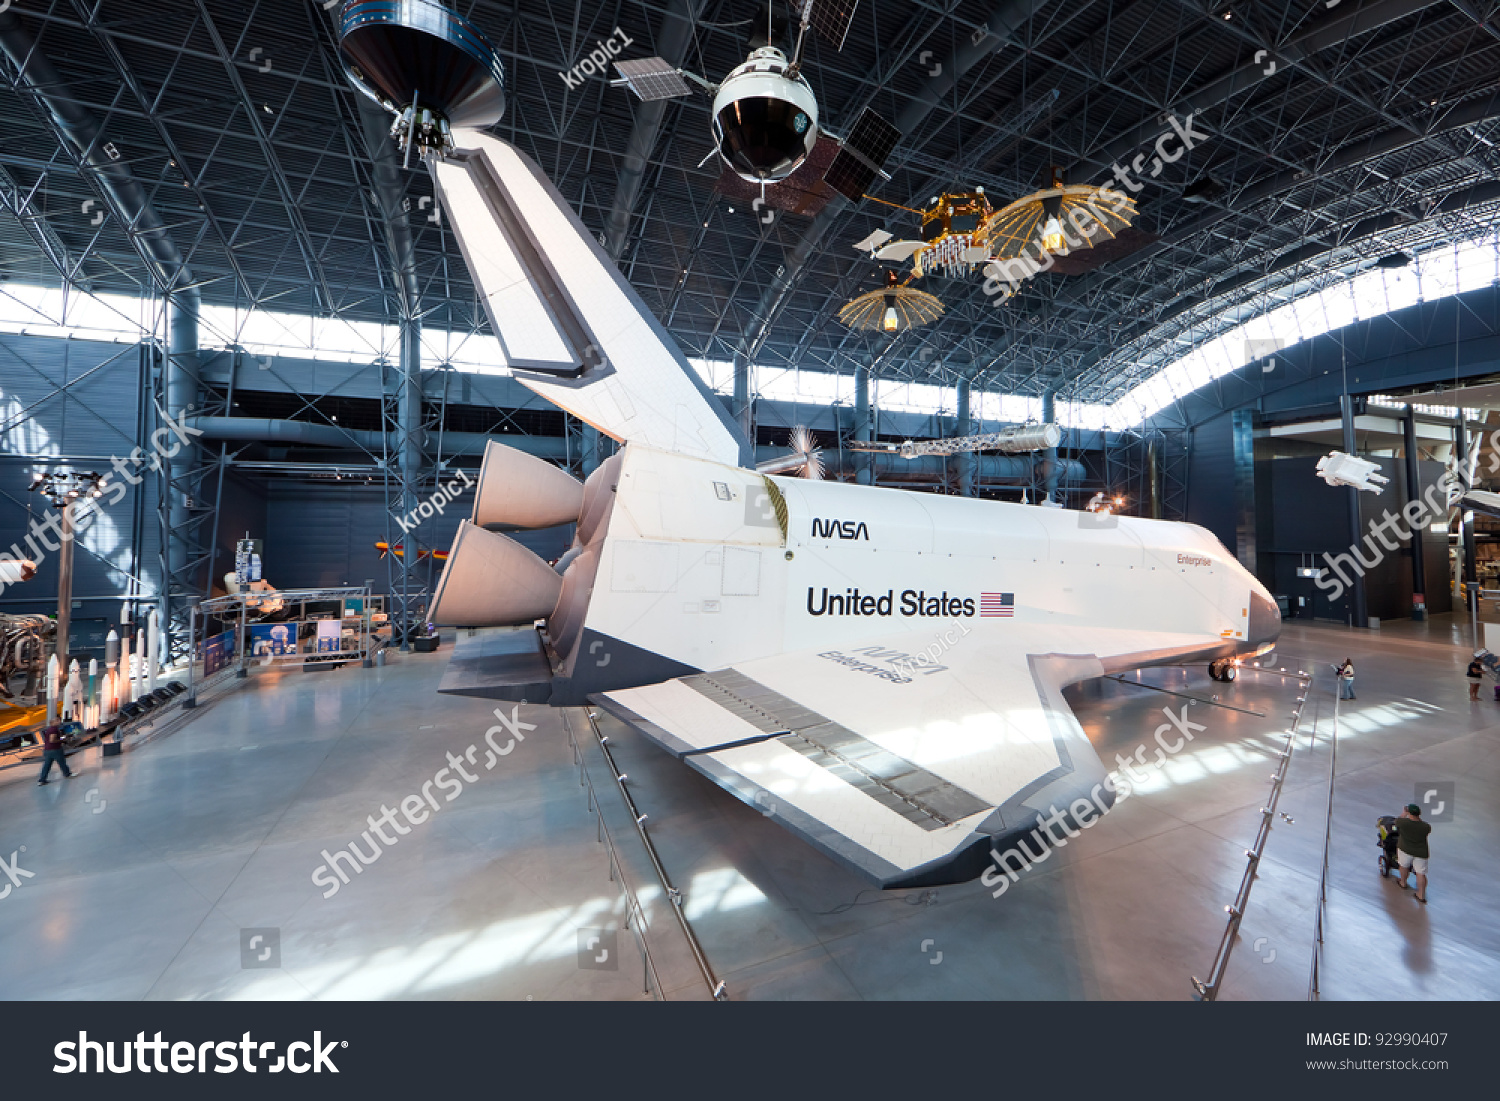 first space shuttle prototype - photo #24